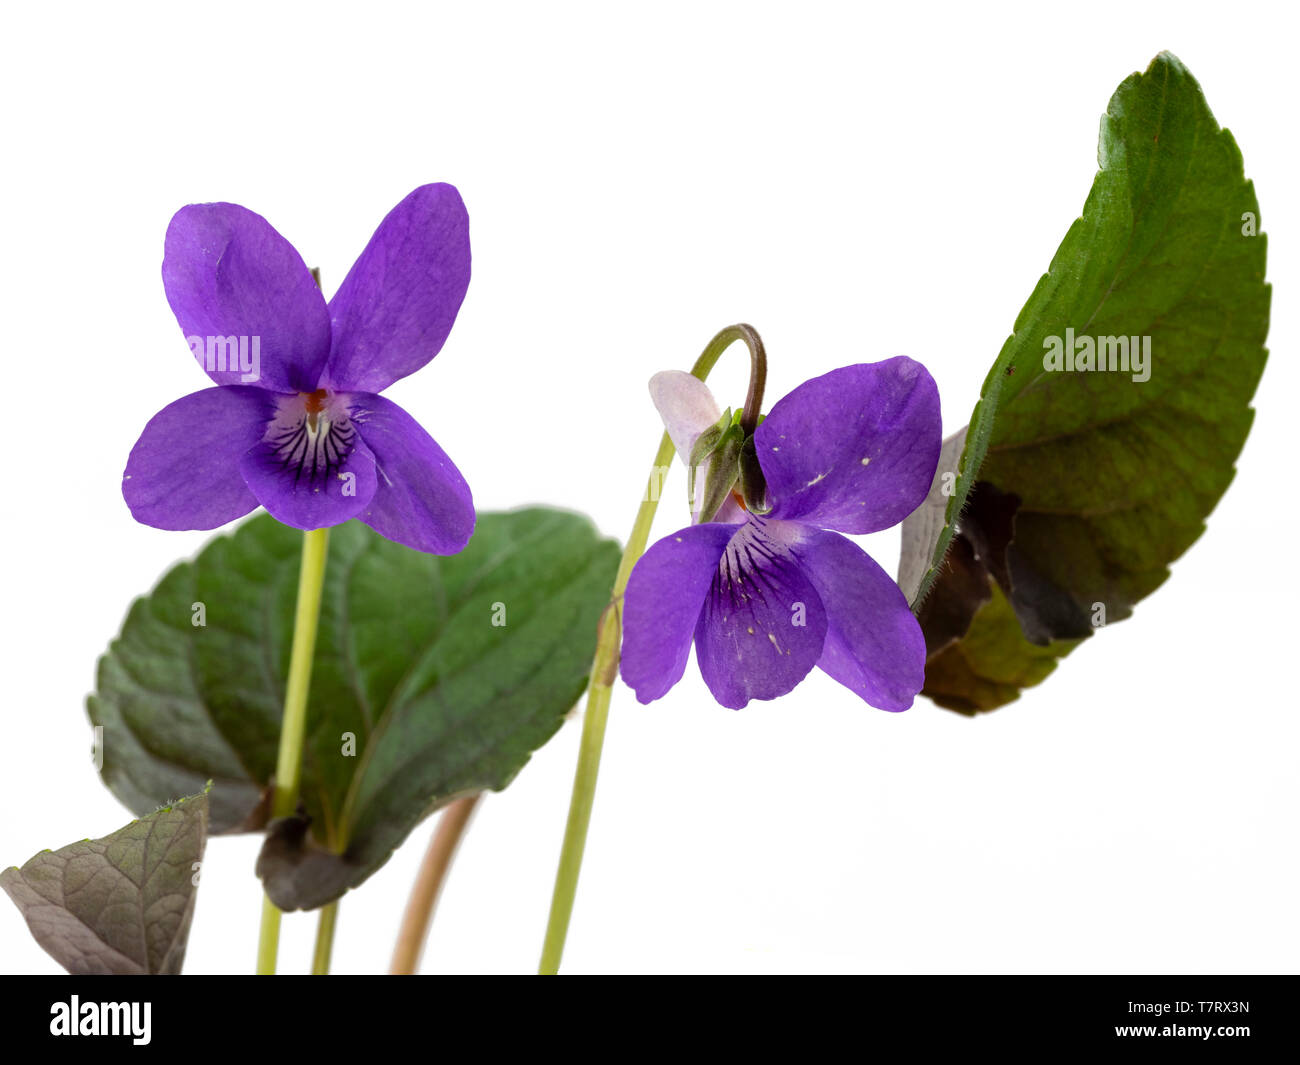 Dark foliage and flowers of the self seeding, spring flowering violet, Viola riviniana (Purpurea Group) on a white background - Stock Image